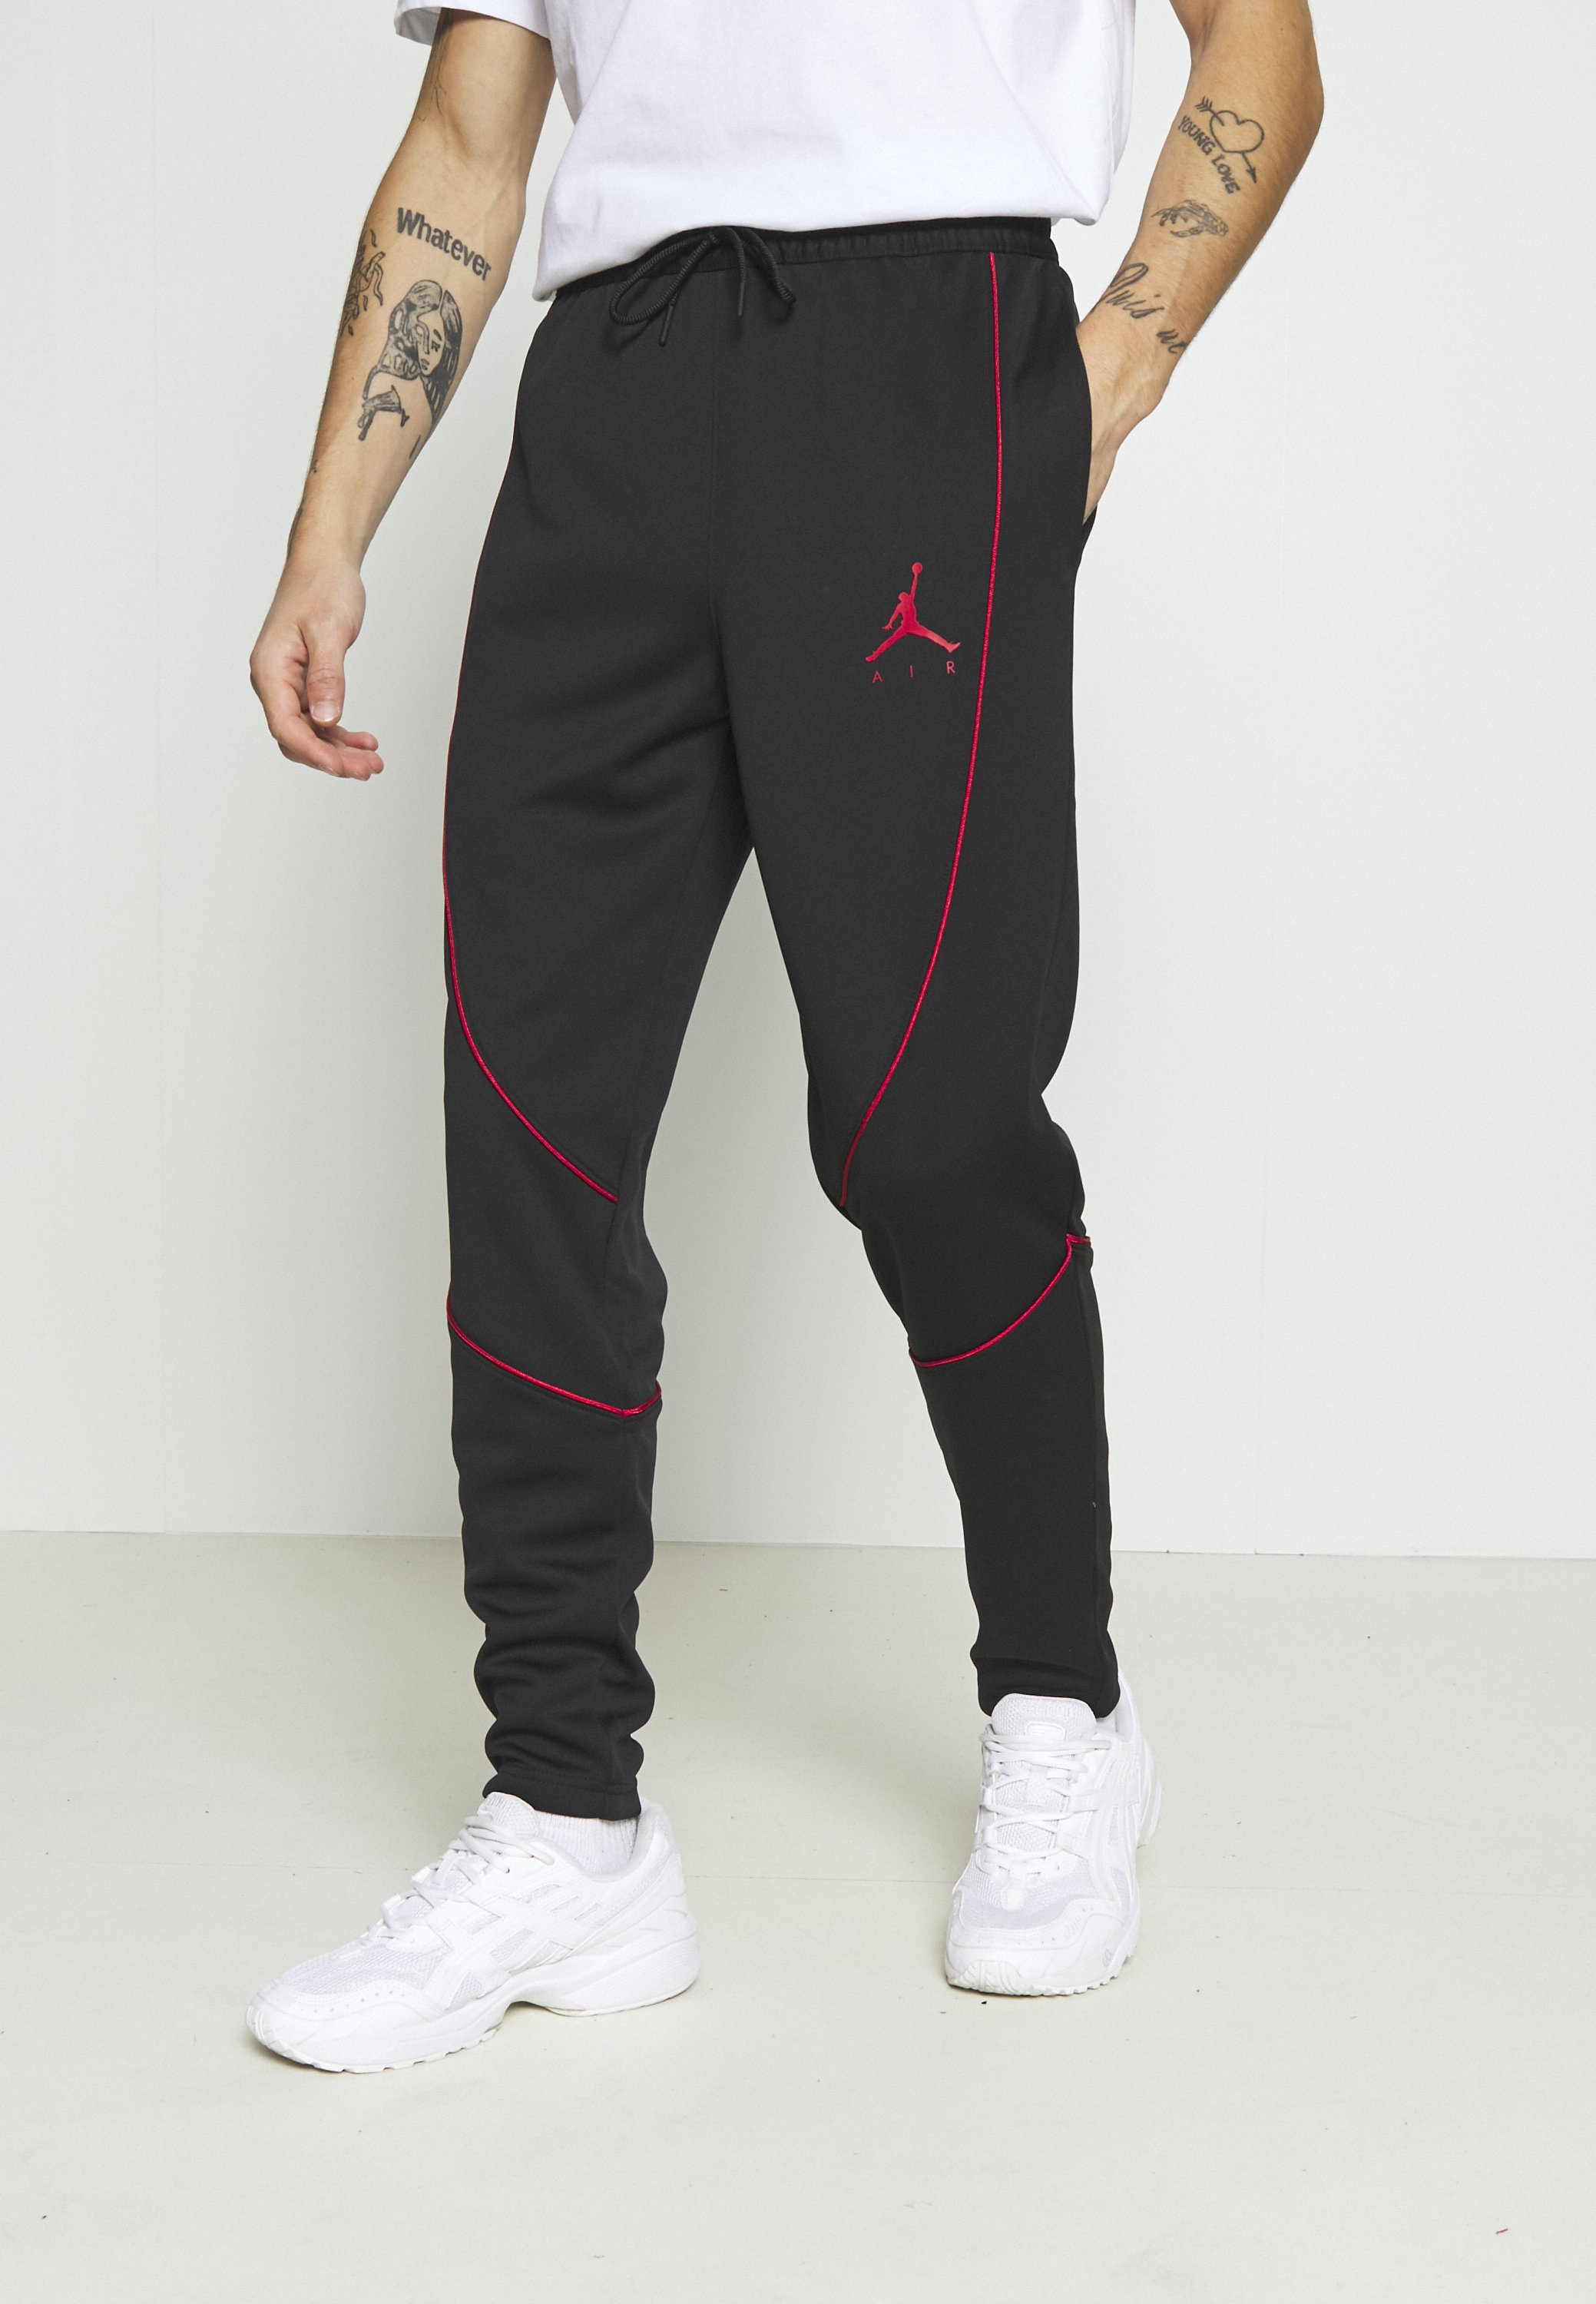 Order High Quality Men's Clothing Jordan JUMPMAN AIR SUIT PANT Tracksuit bottoms black/gym red Vl5O7BLKK wyEMu7HlW